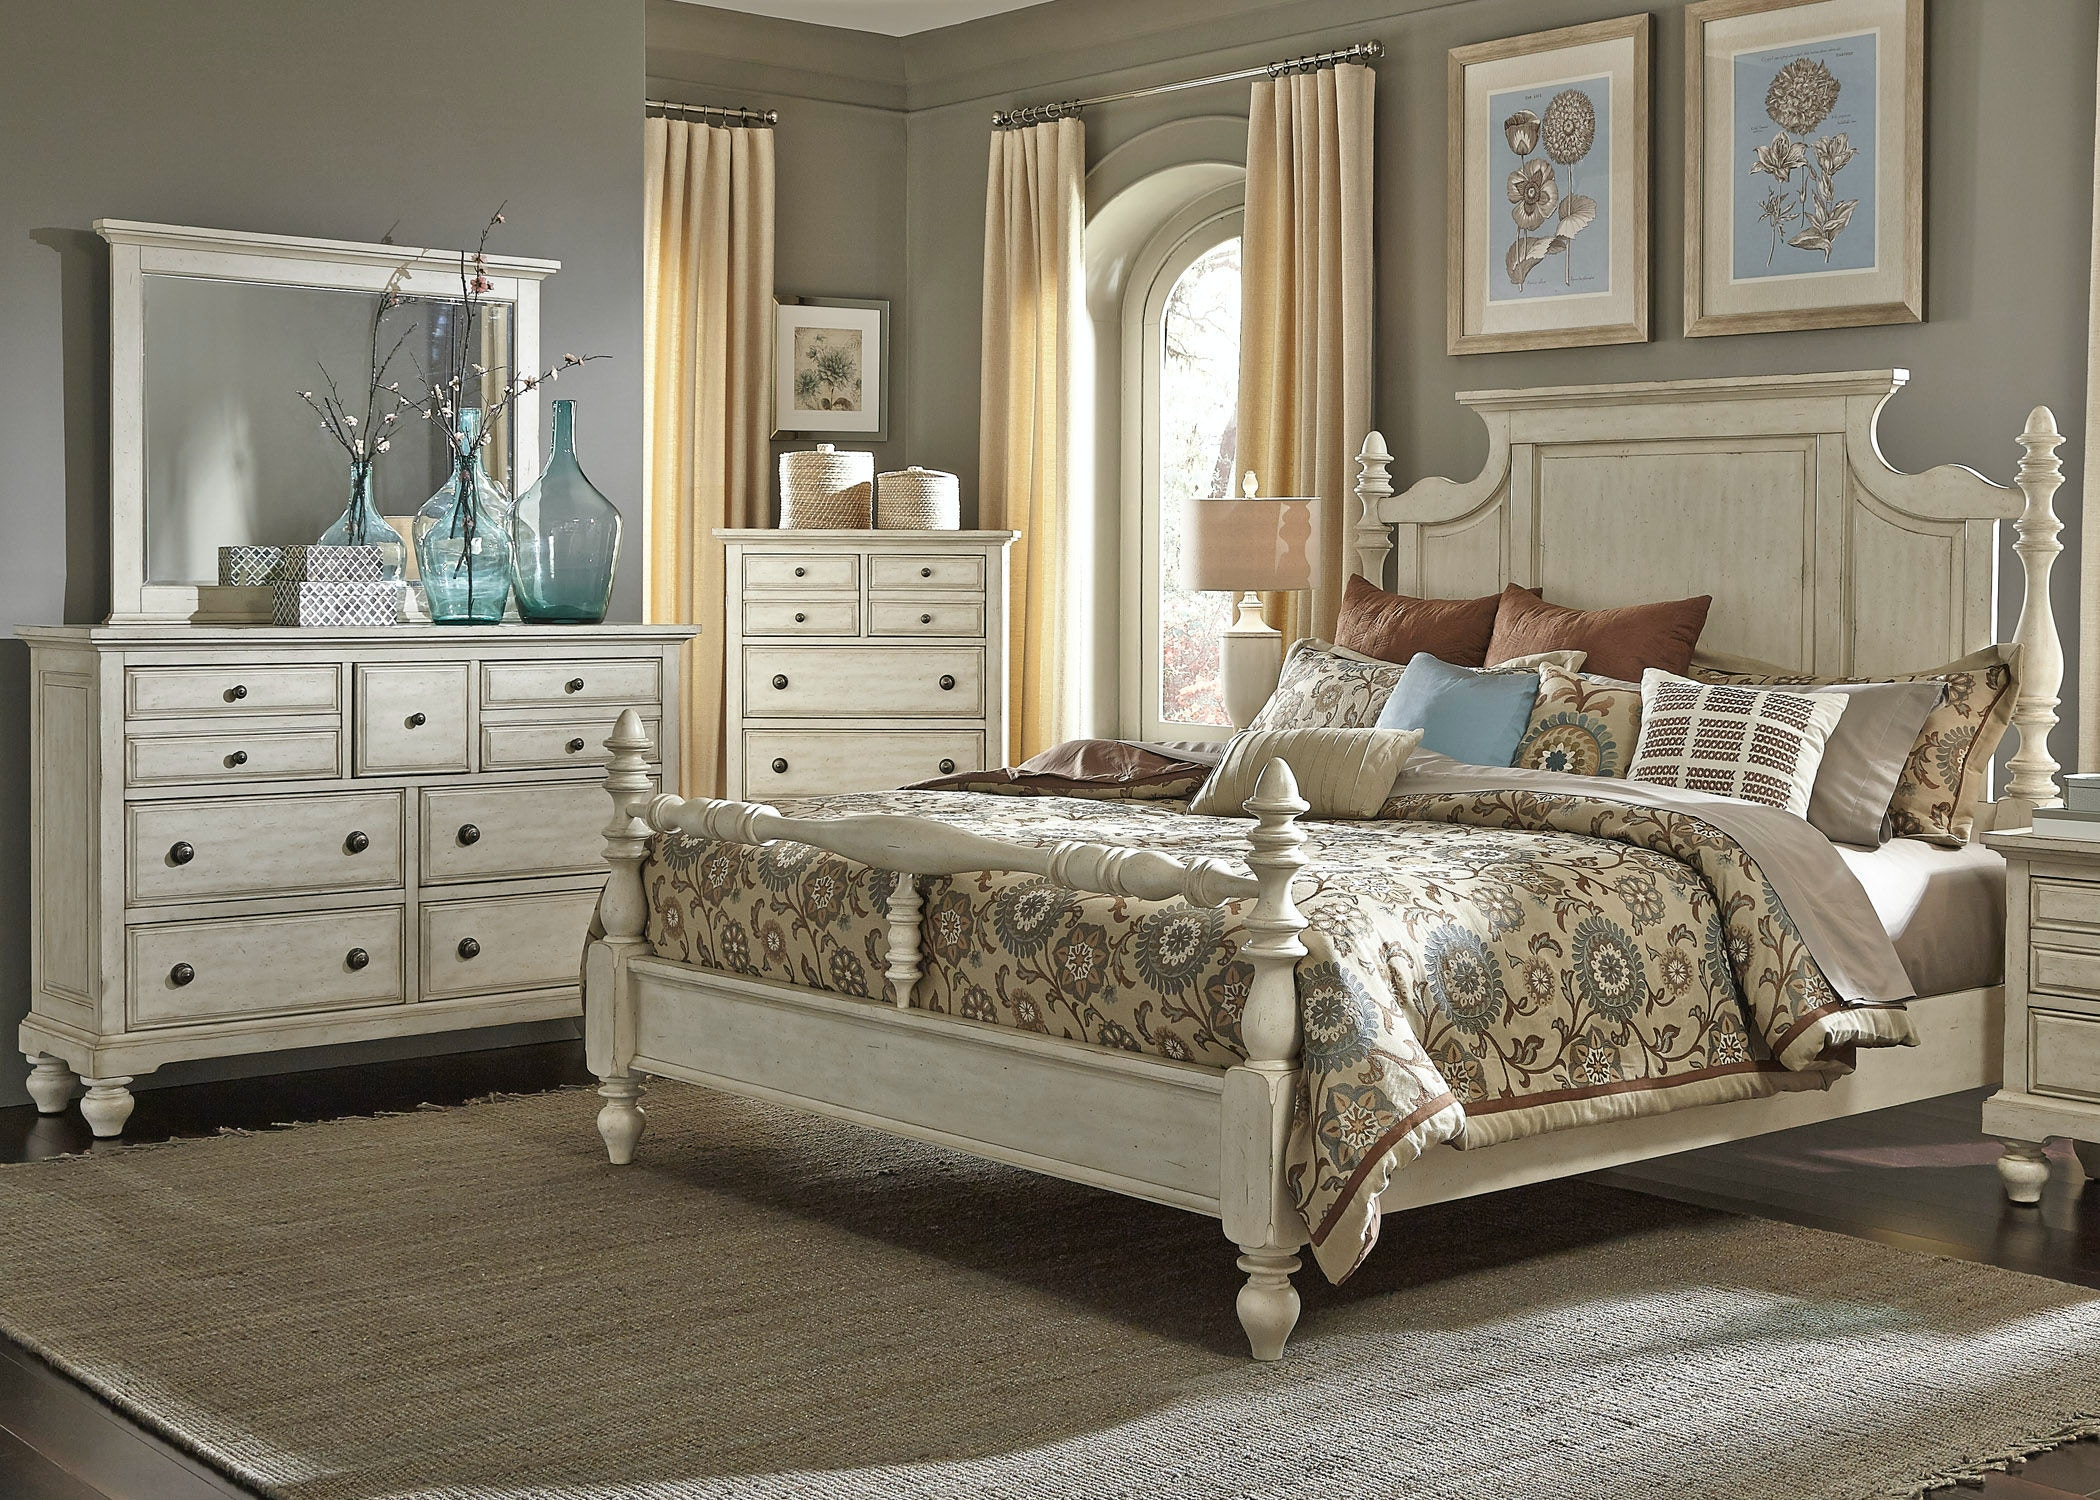 Liberty Furniture Bedroom Poster Bed Rails 697 BR90 At China Towne Furniture